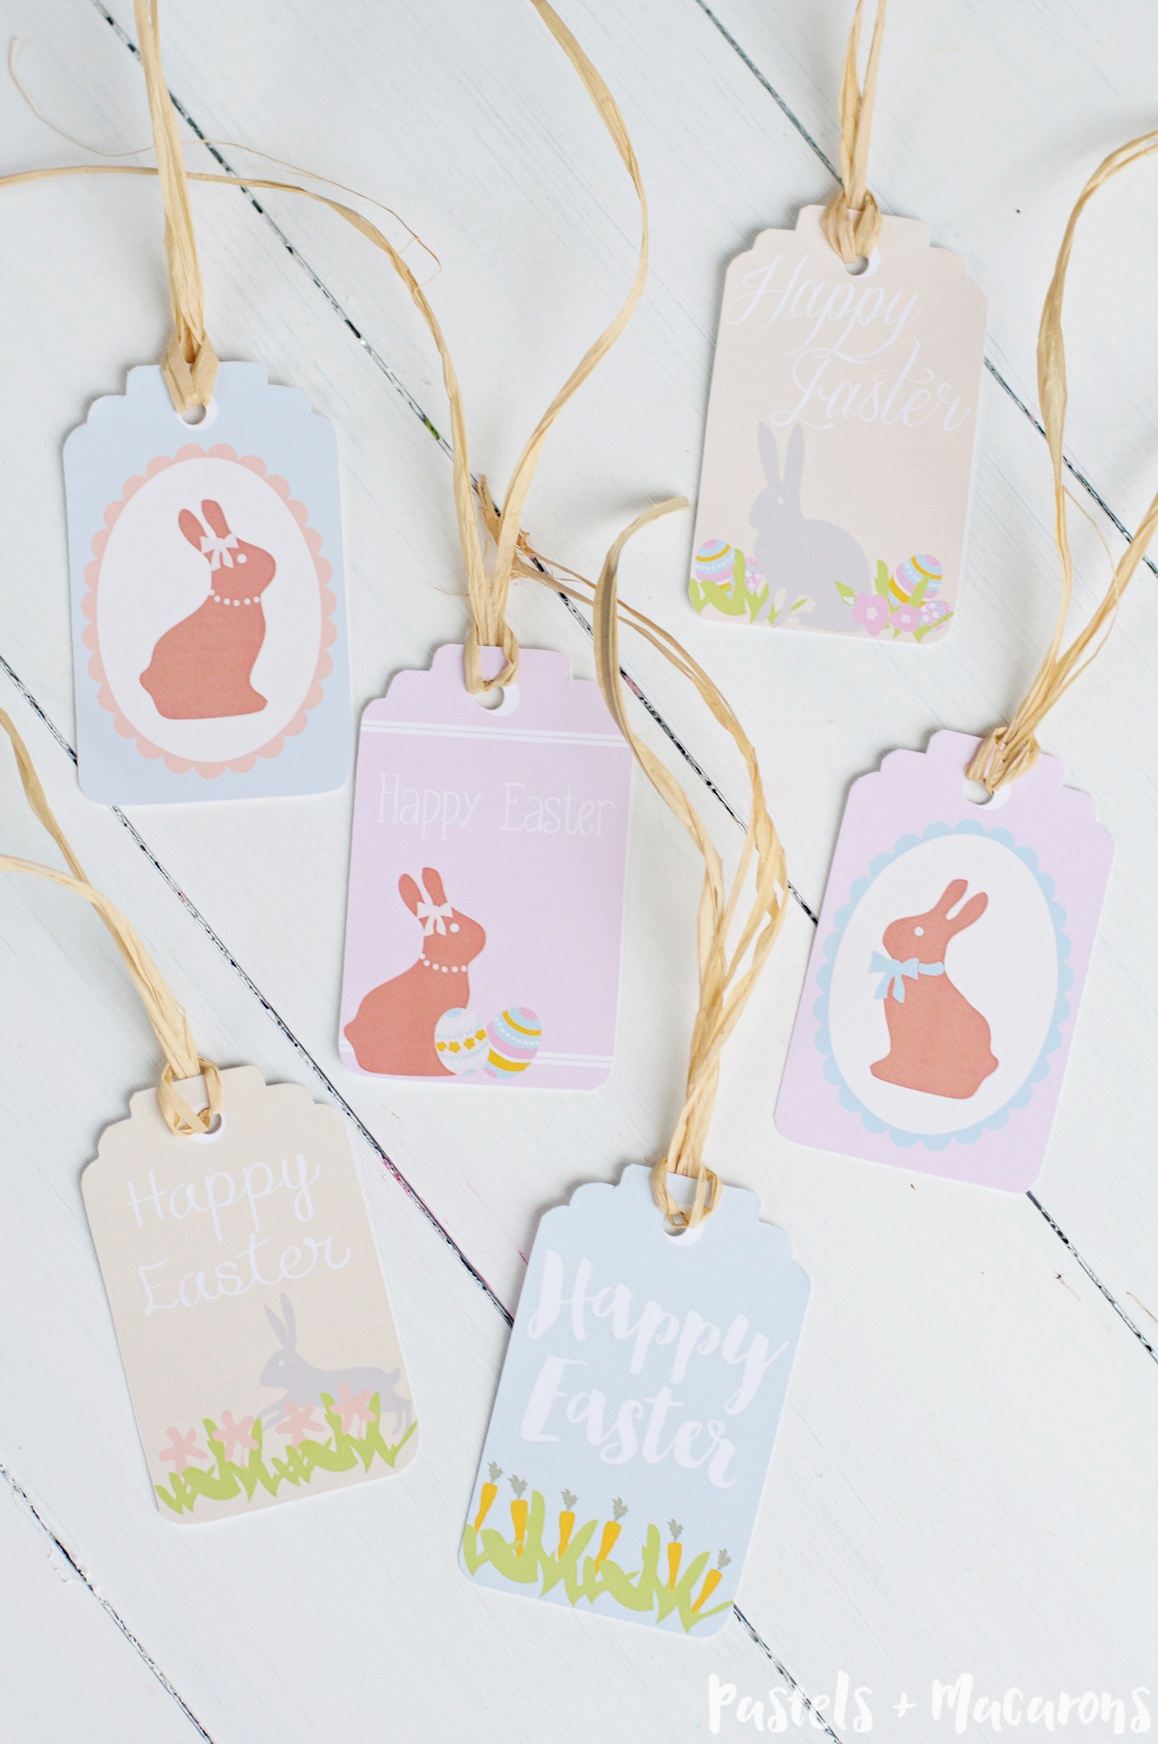 Free Printable Easter Gift Tags - Free Printable Tags